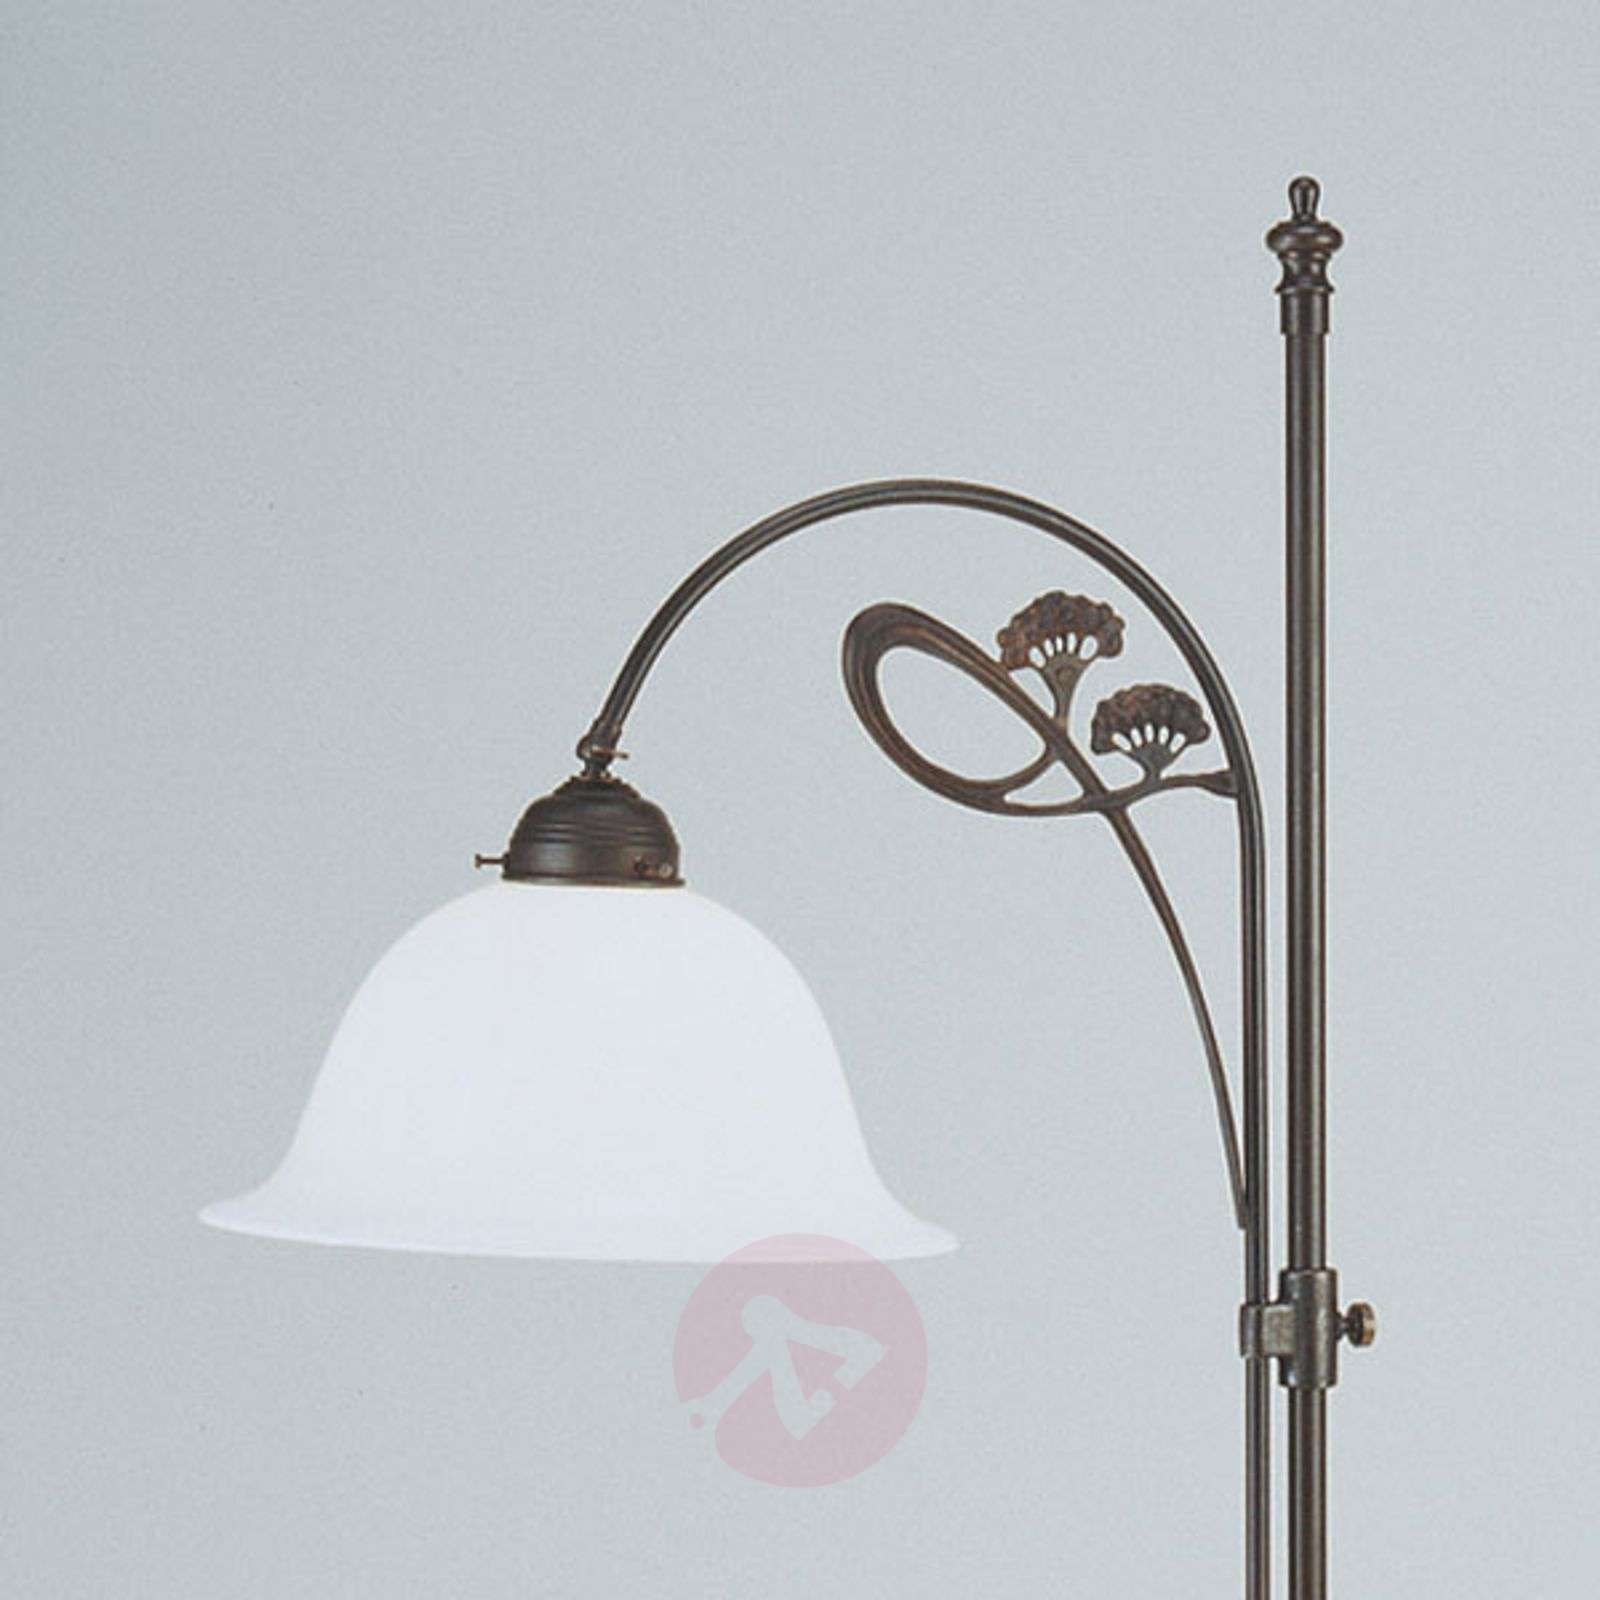 Ilka subtle floor lamp, antique colour scheme-1542057-01